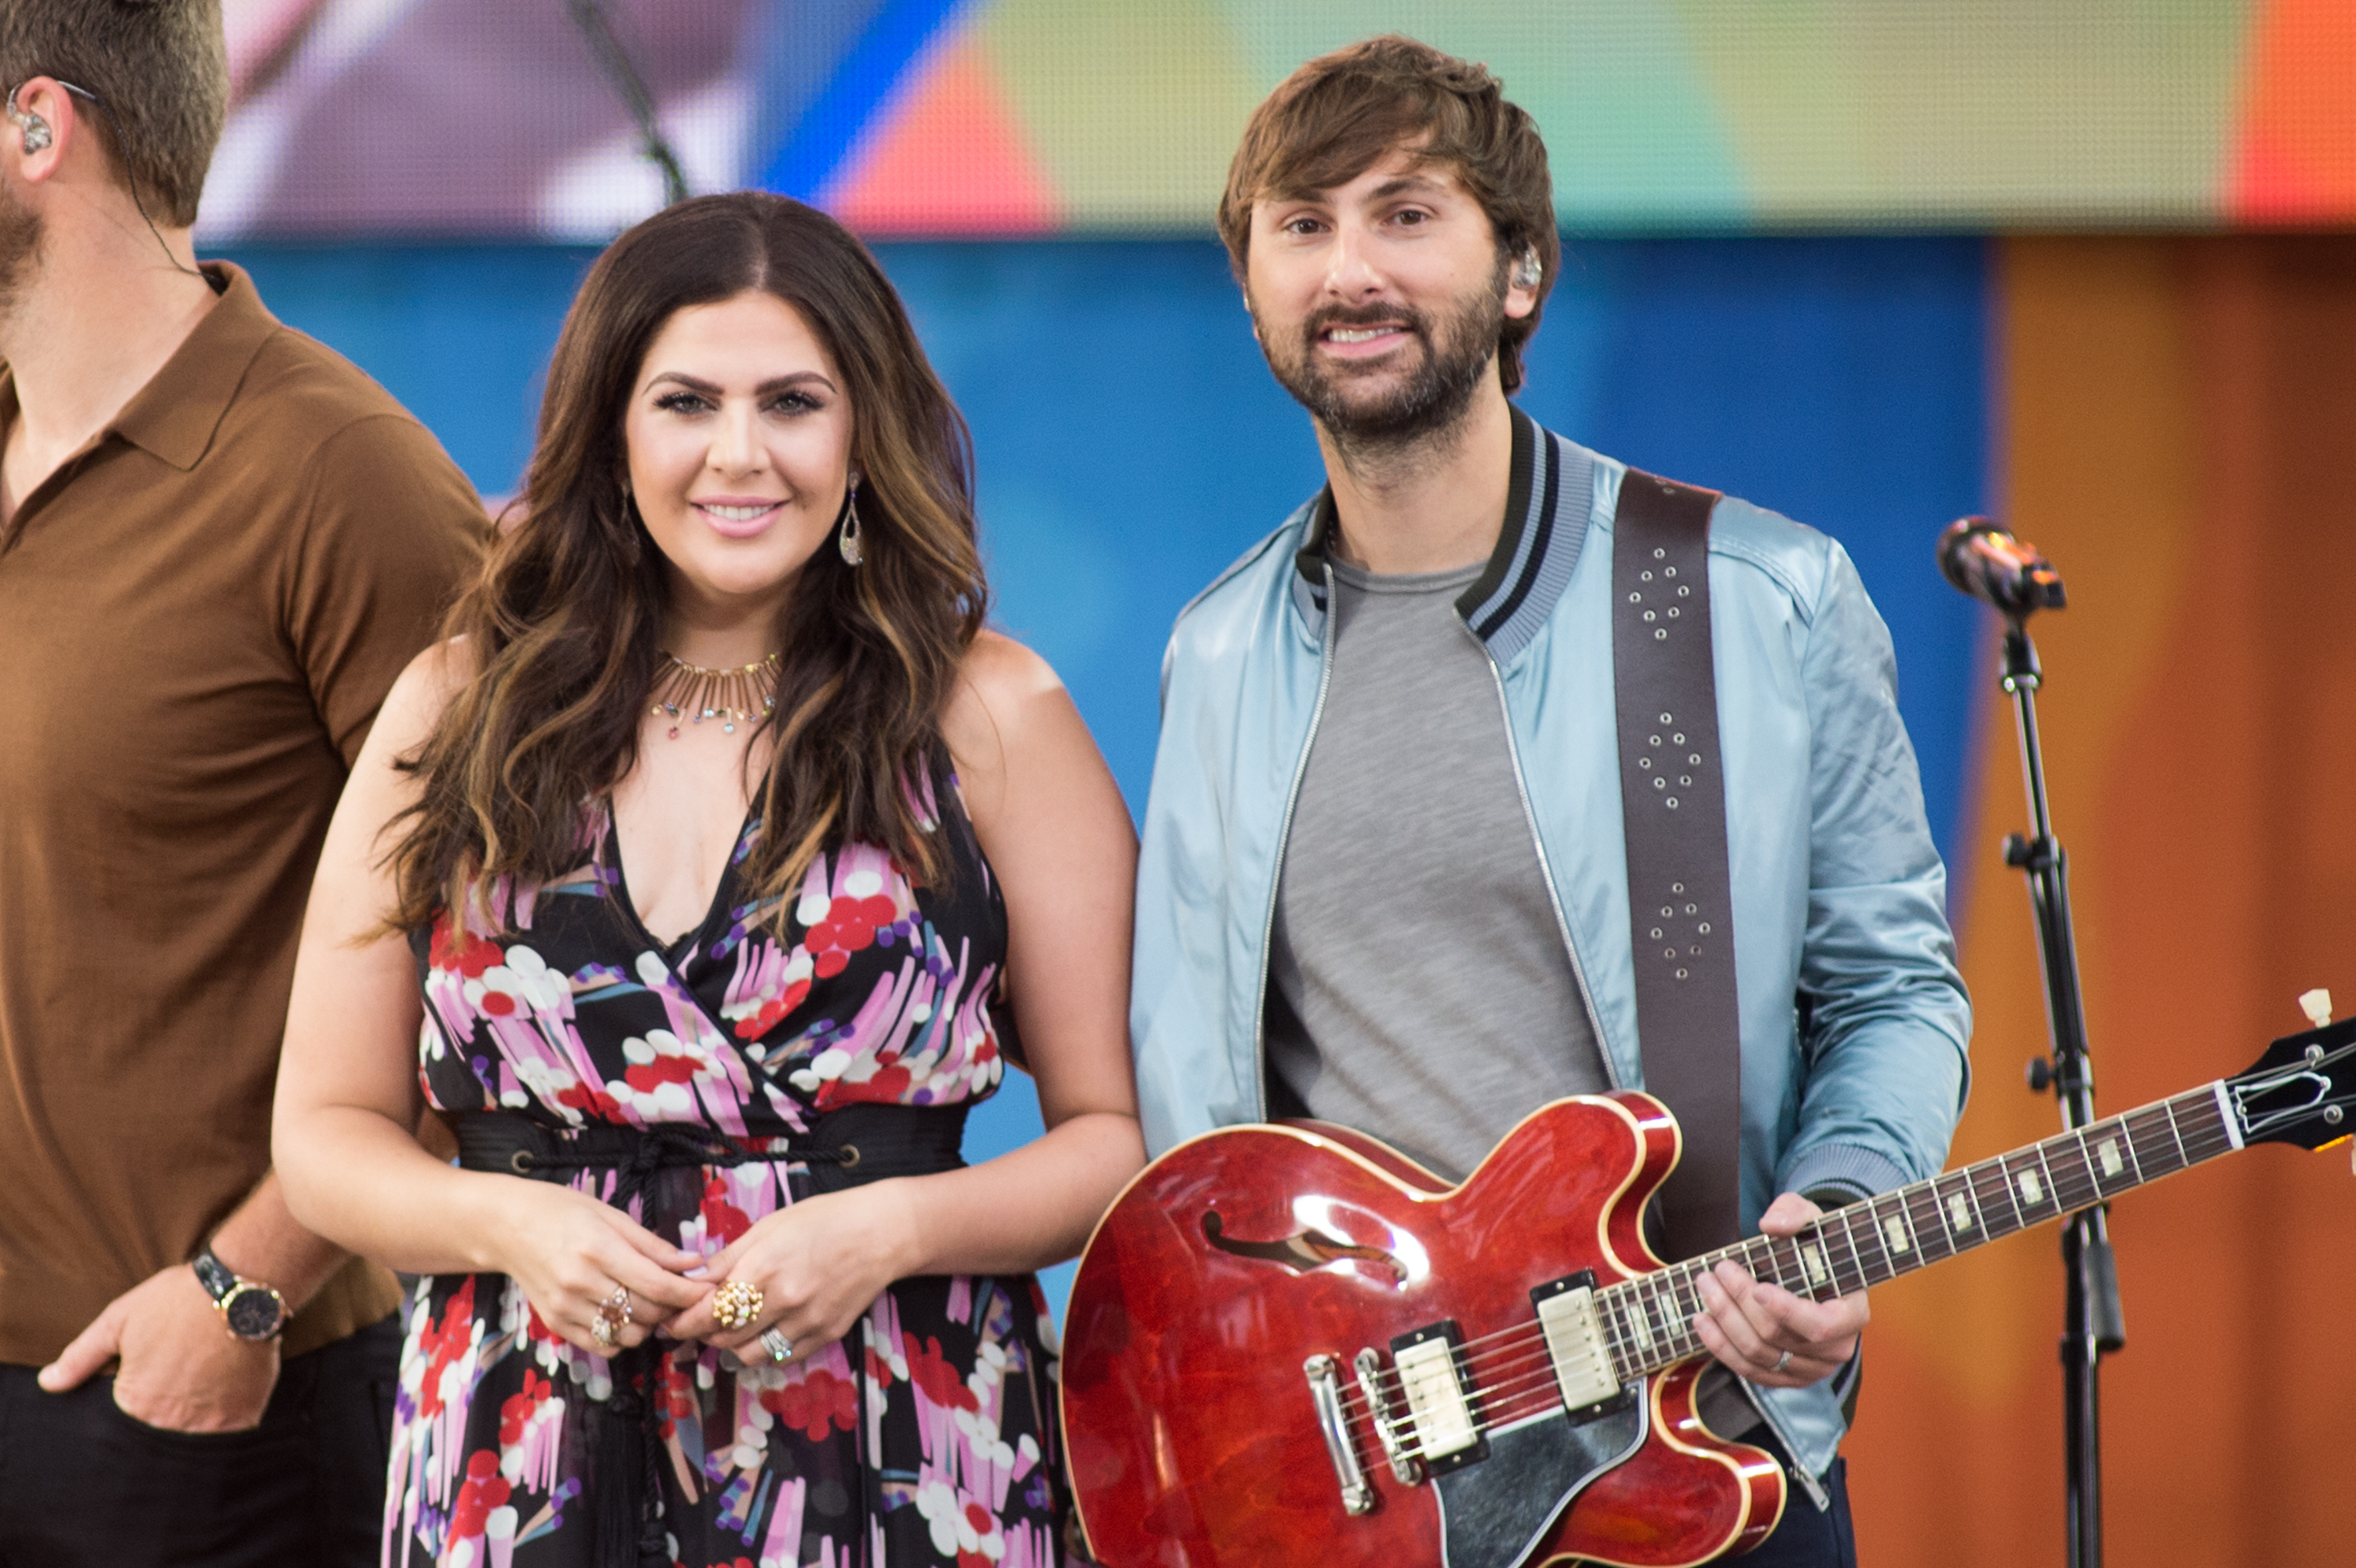 Lady Antebellum members Hillary Scott, Dave Haywood expanding their families